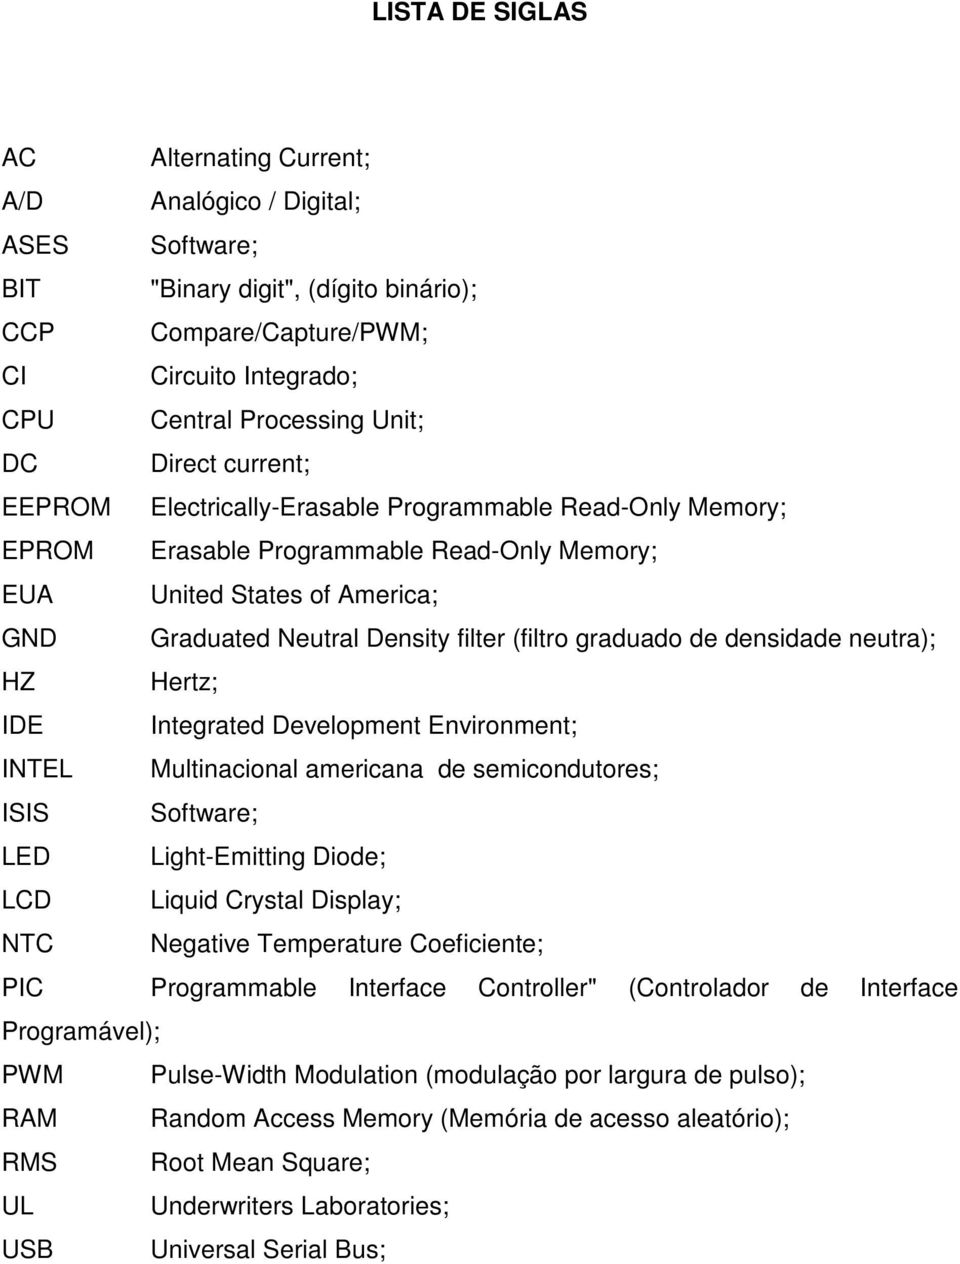 graduado de densidade neutra); HZ Hertz; IDE Integrated Development Environment; INTEL Multinacional americana de semicondutores; ISIS Software; LED Light-Emitting Diode; LCD Liquid Crystal Display;